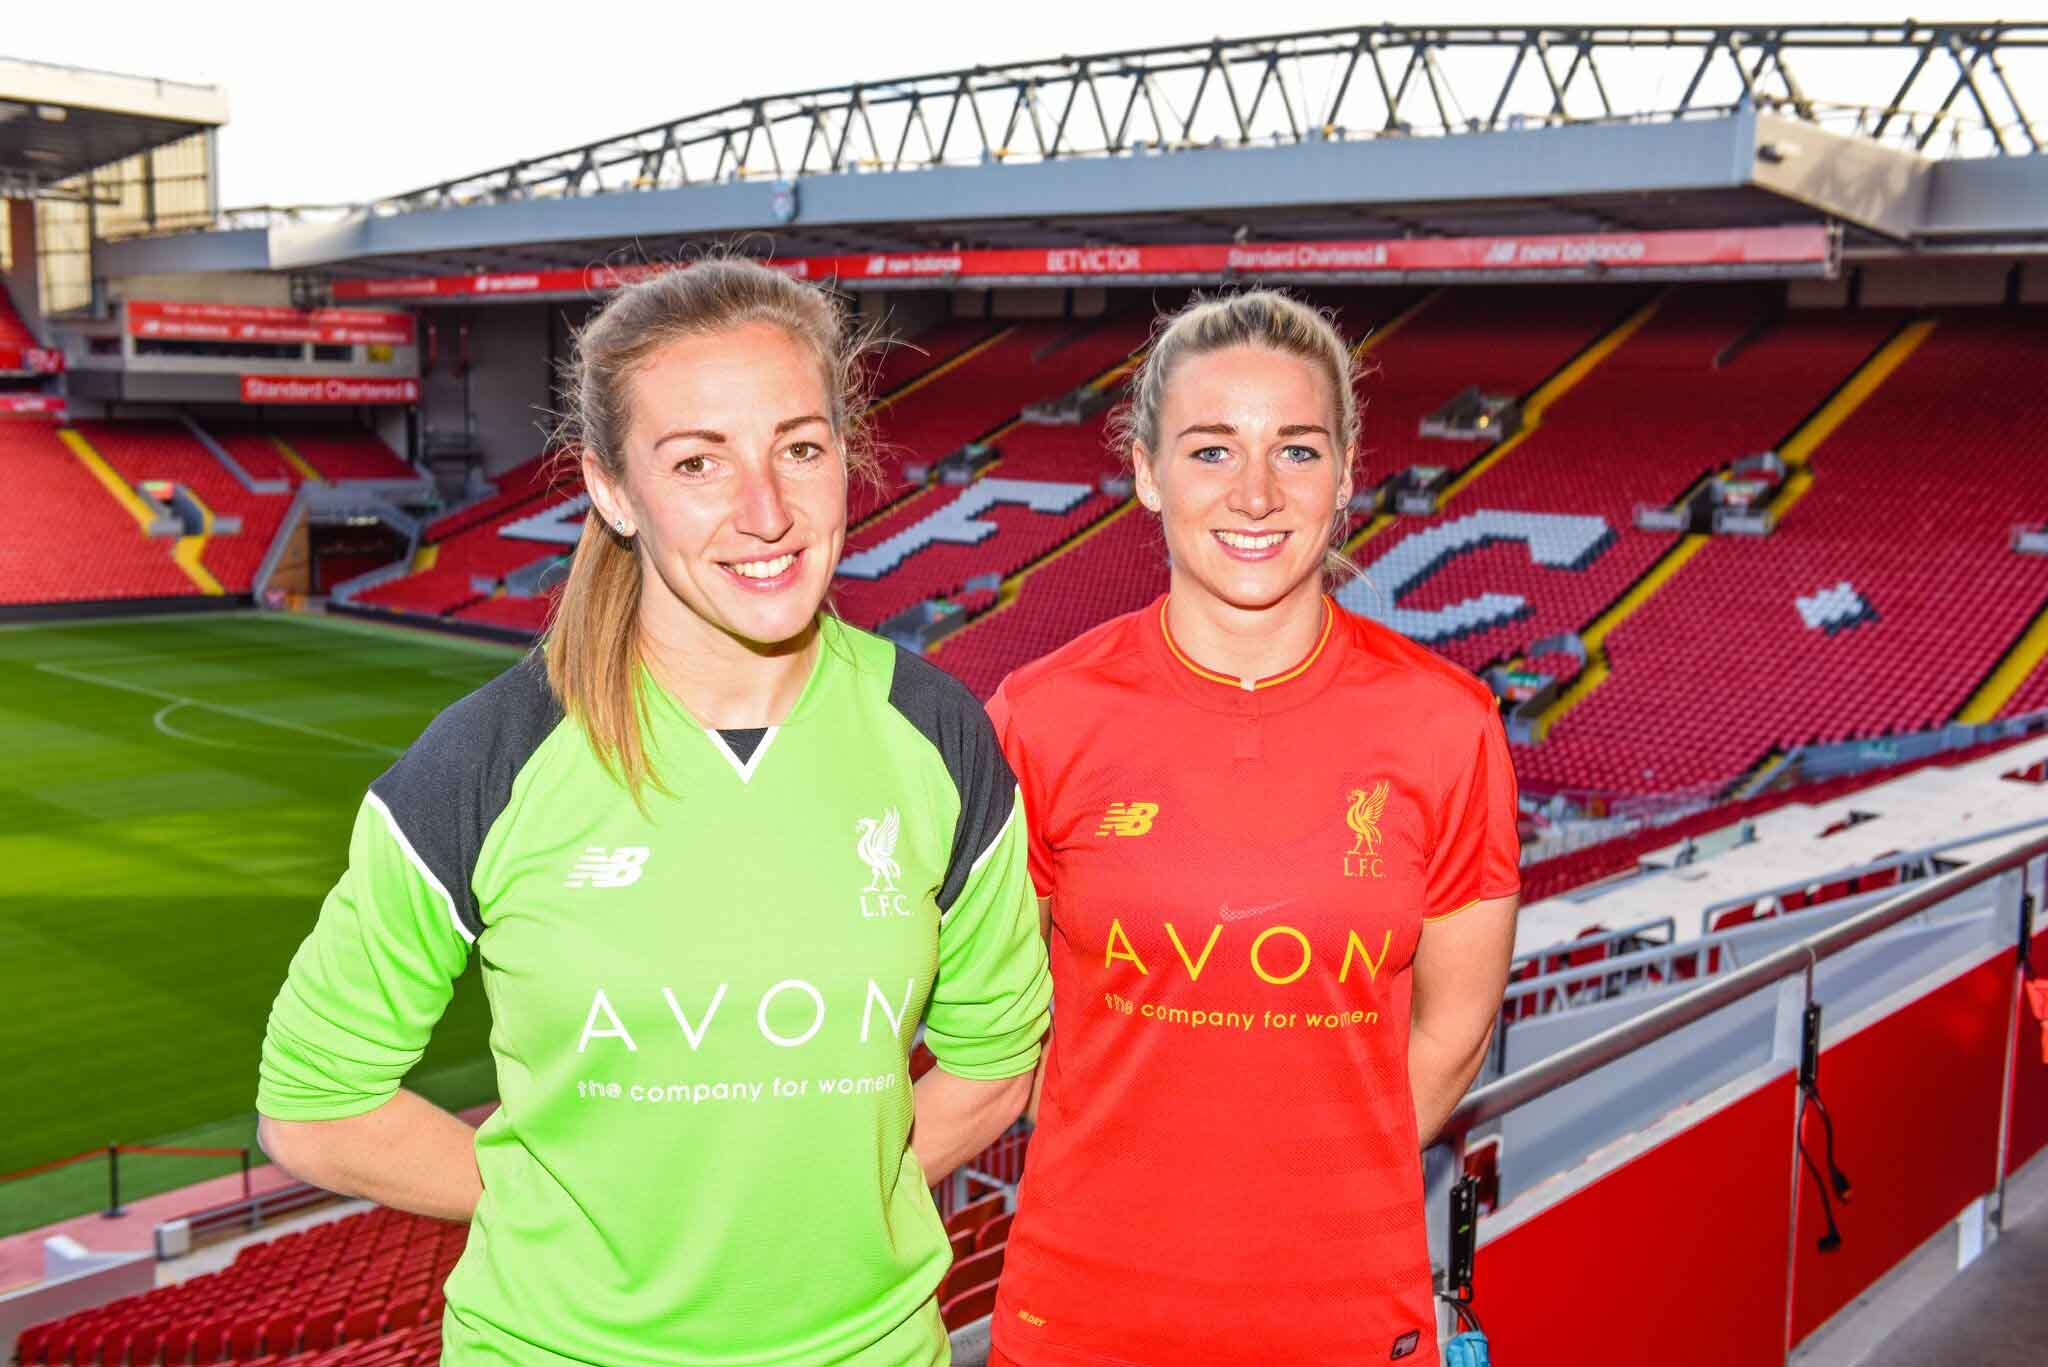 Avon Liverpool Ladies football sposnorship